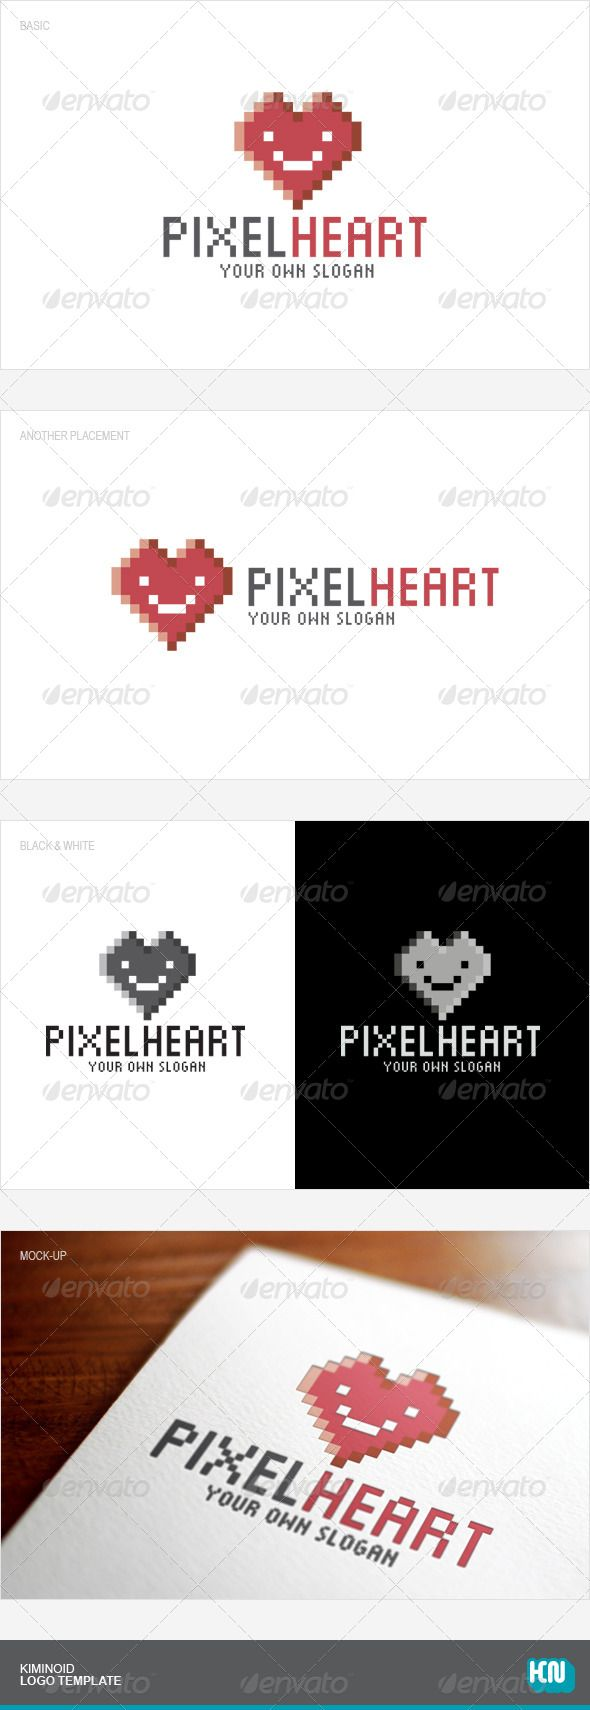 Pixel Heart  #GraphicRiver        Pixel Heart Logo Template Description   100% Vector  CMYK  AI & EPS  Ready to print  Full color version / black & white version  Easy to edit color & text  Free font used  Font   Munro       Created: 5March13 GraphicsFilesIncluded: VectorEPS #AIIllustrator Layered: No MinimumAdobeCSVersion: CS Resolution: Resizable Tags: brand #branding #business #characterlogo #company #corporate #creative #creativelogo #cute #design #designlogo #graphic #heart #logo…